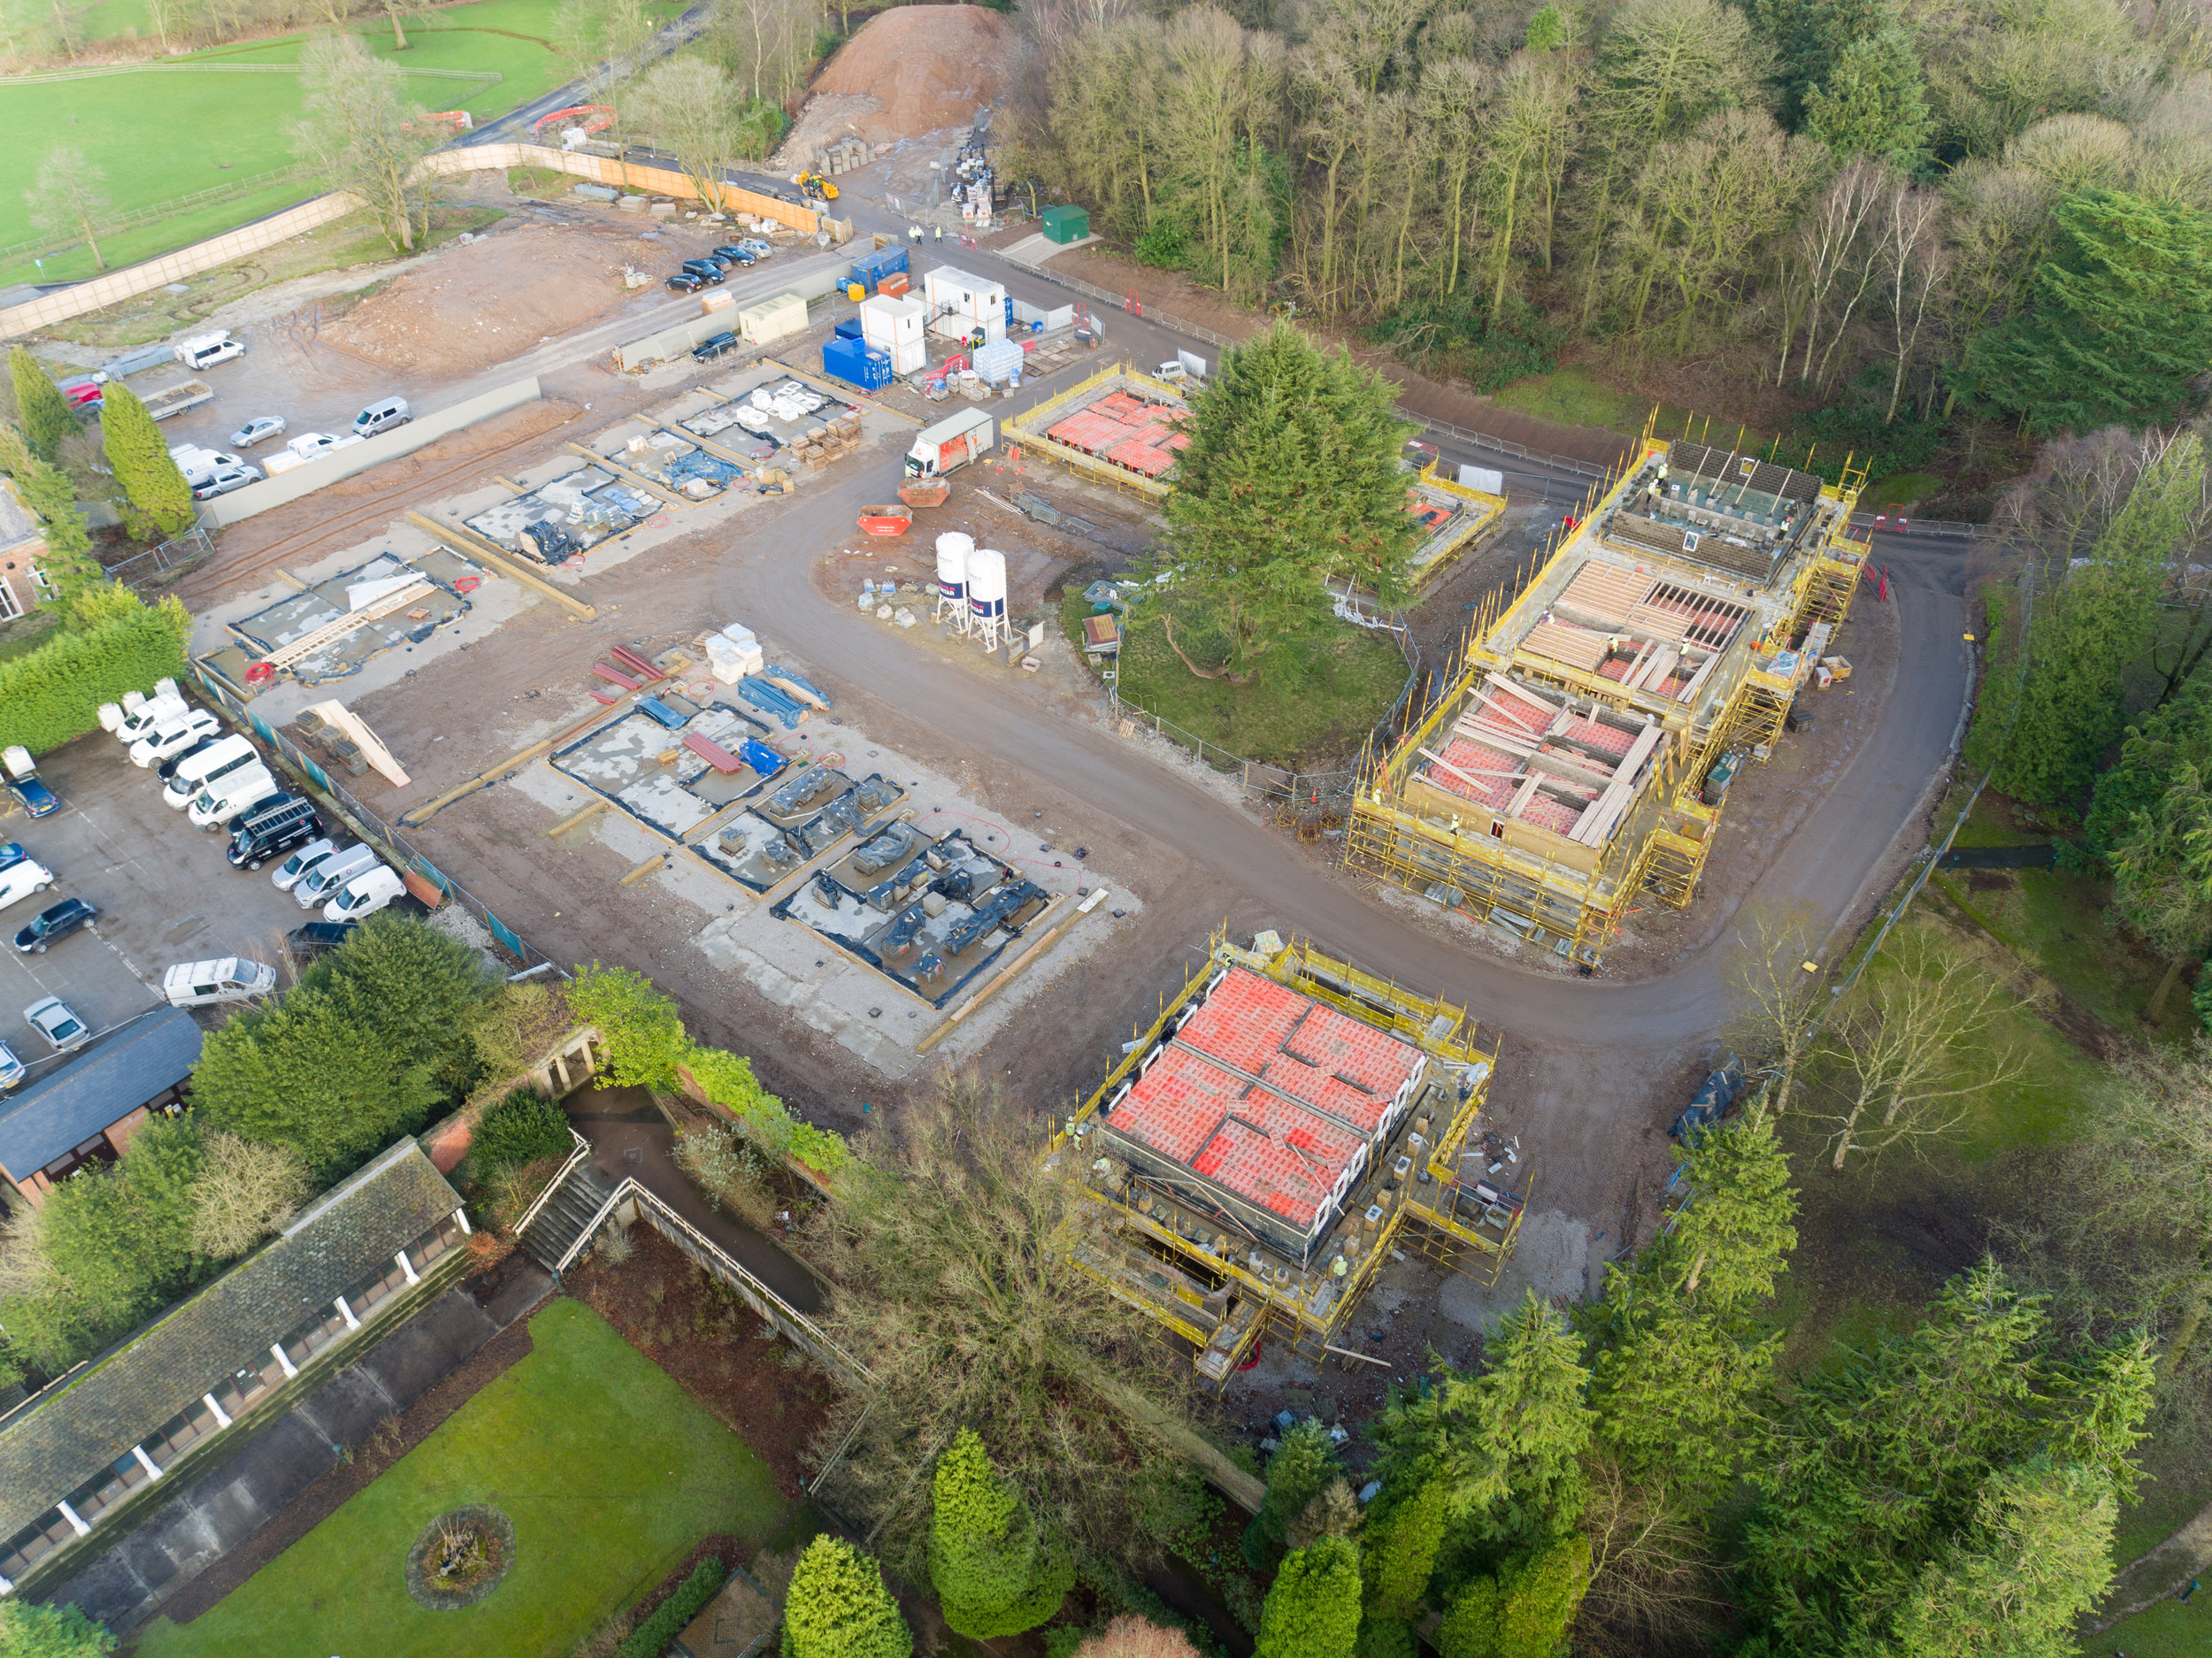 drone view of construction cheshire.jpg